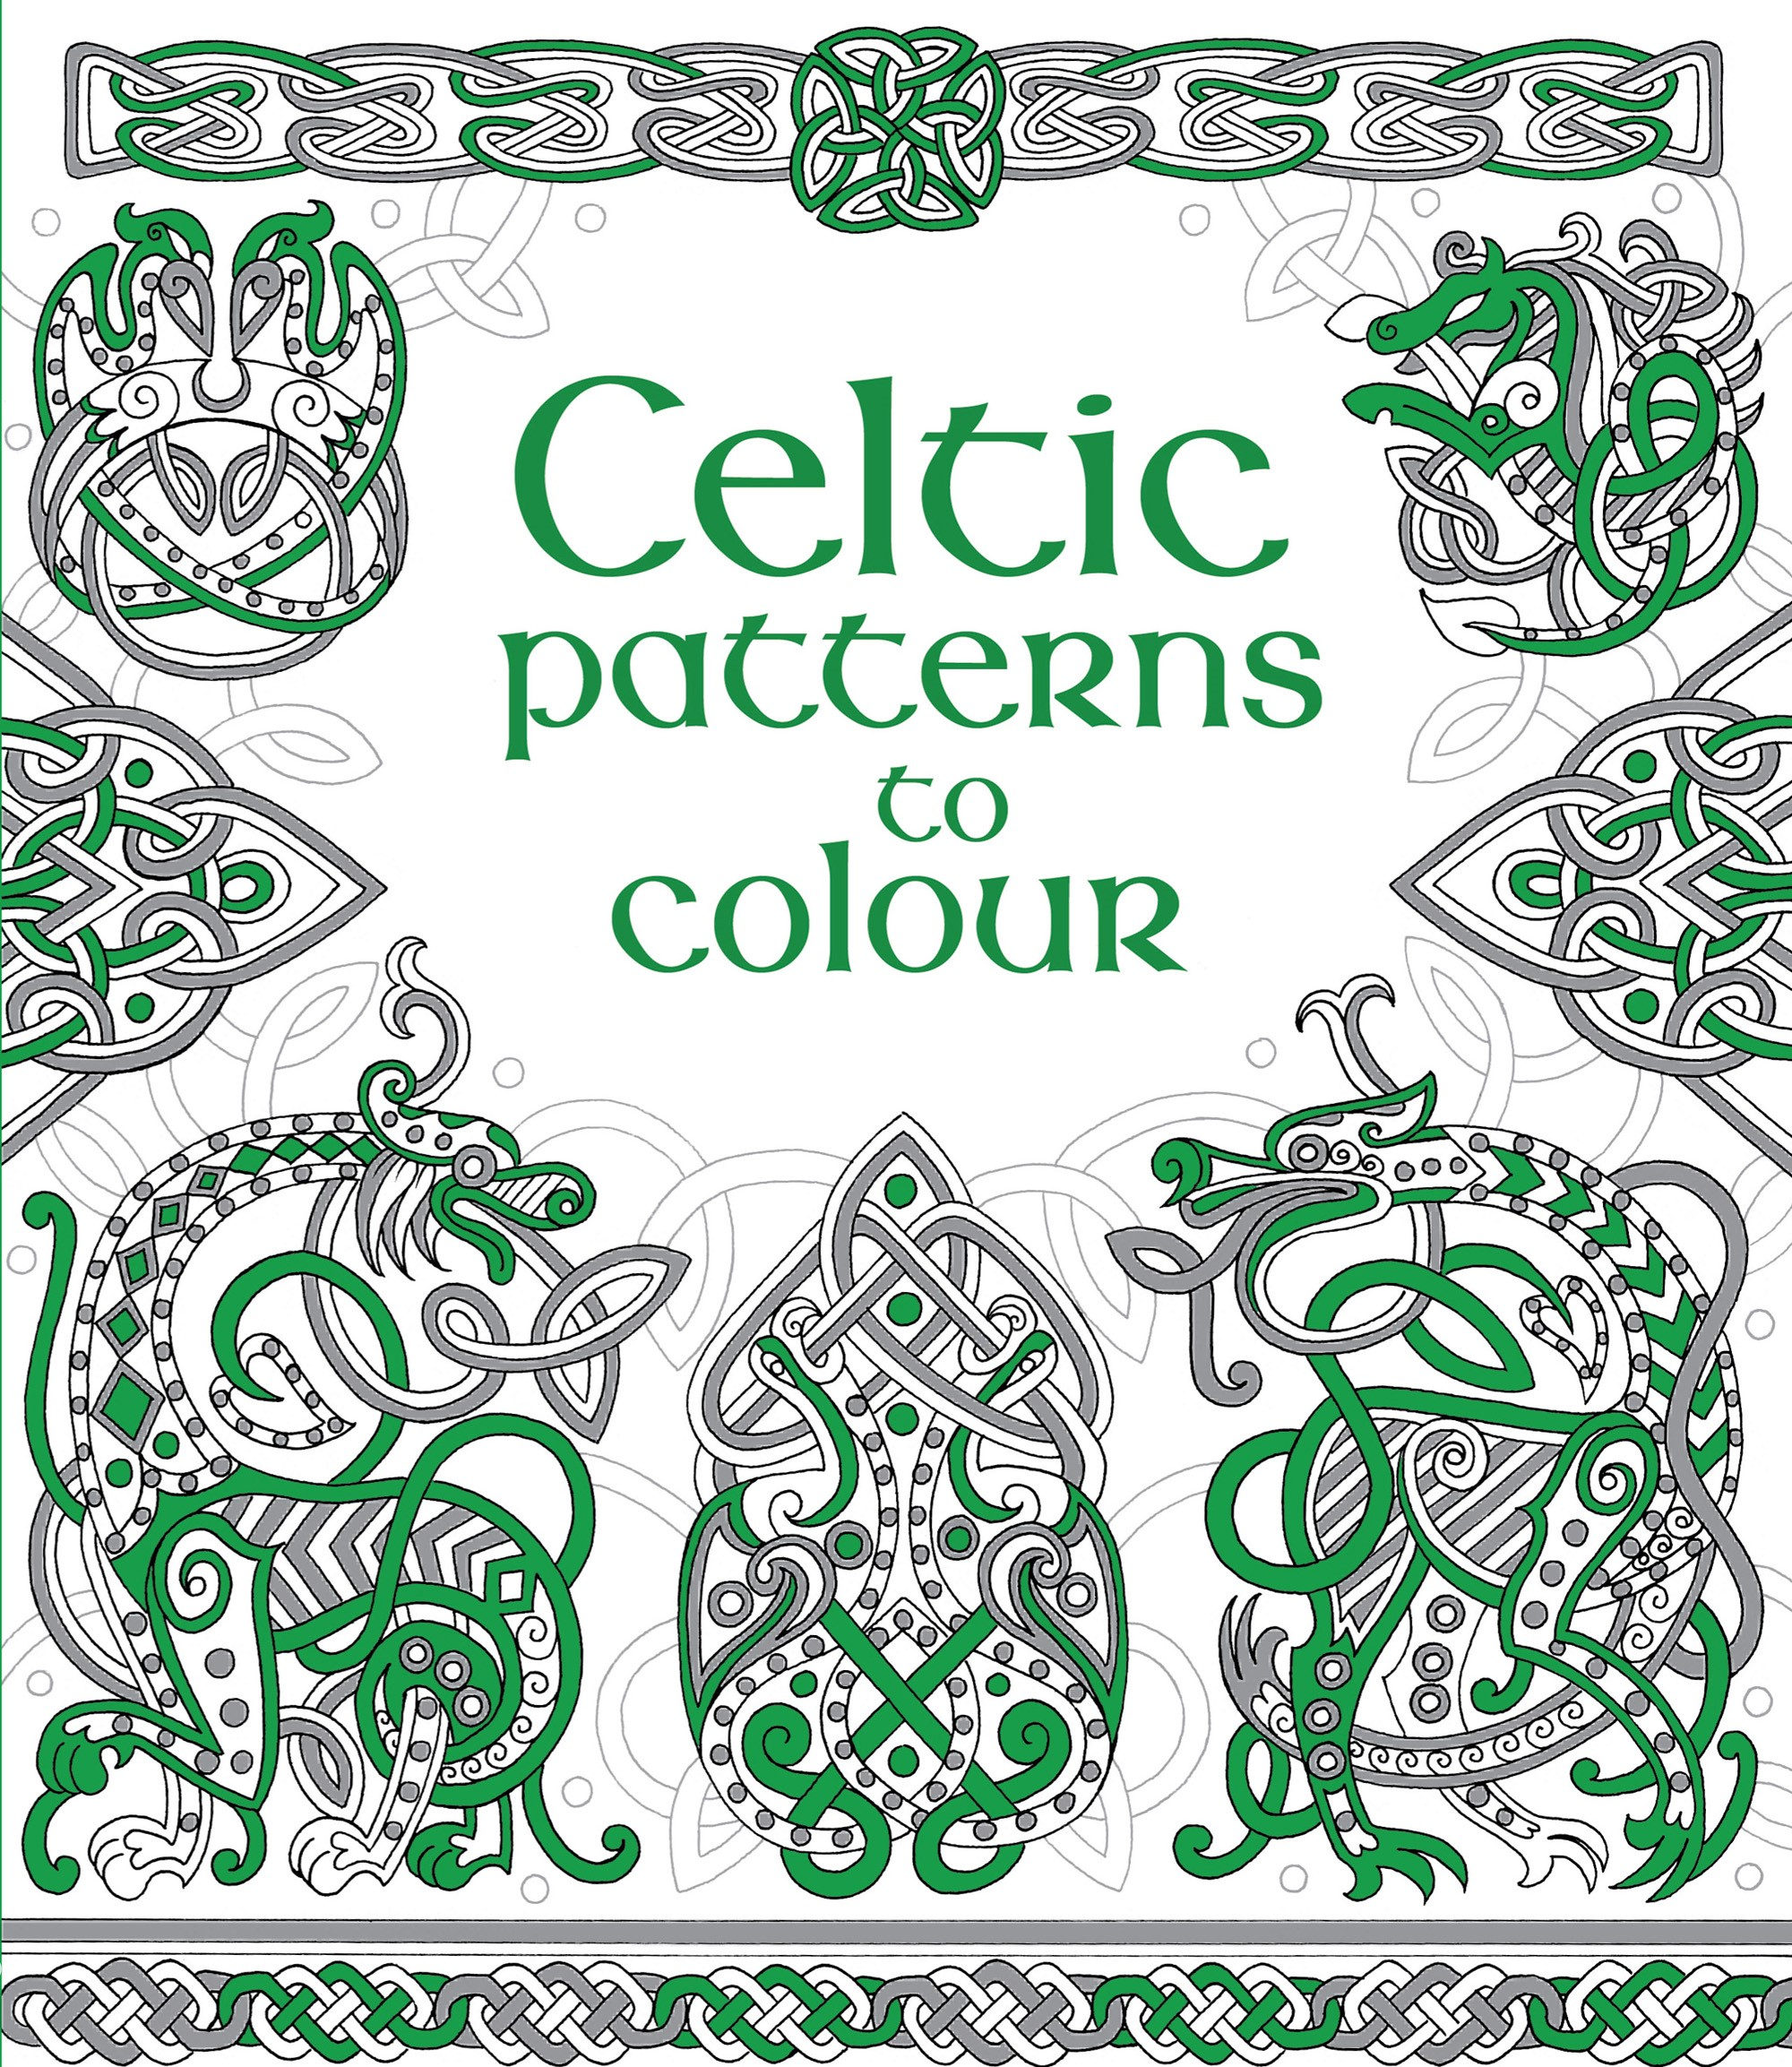 Nice Coloring Book Wallpaper Small Coloring Book App Square Bulk Coloring Books Animal Coloring Book Old Animal Coloring Books GrayBig Coloring Books Celtic Patterns To Colour\u201d At Usborne Children\u0027s Books